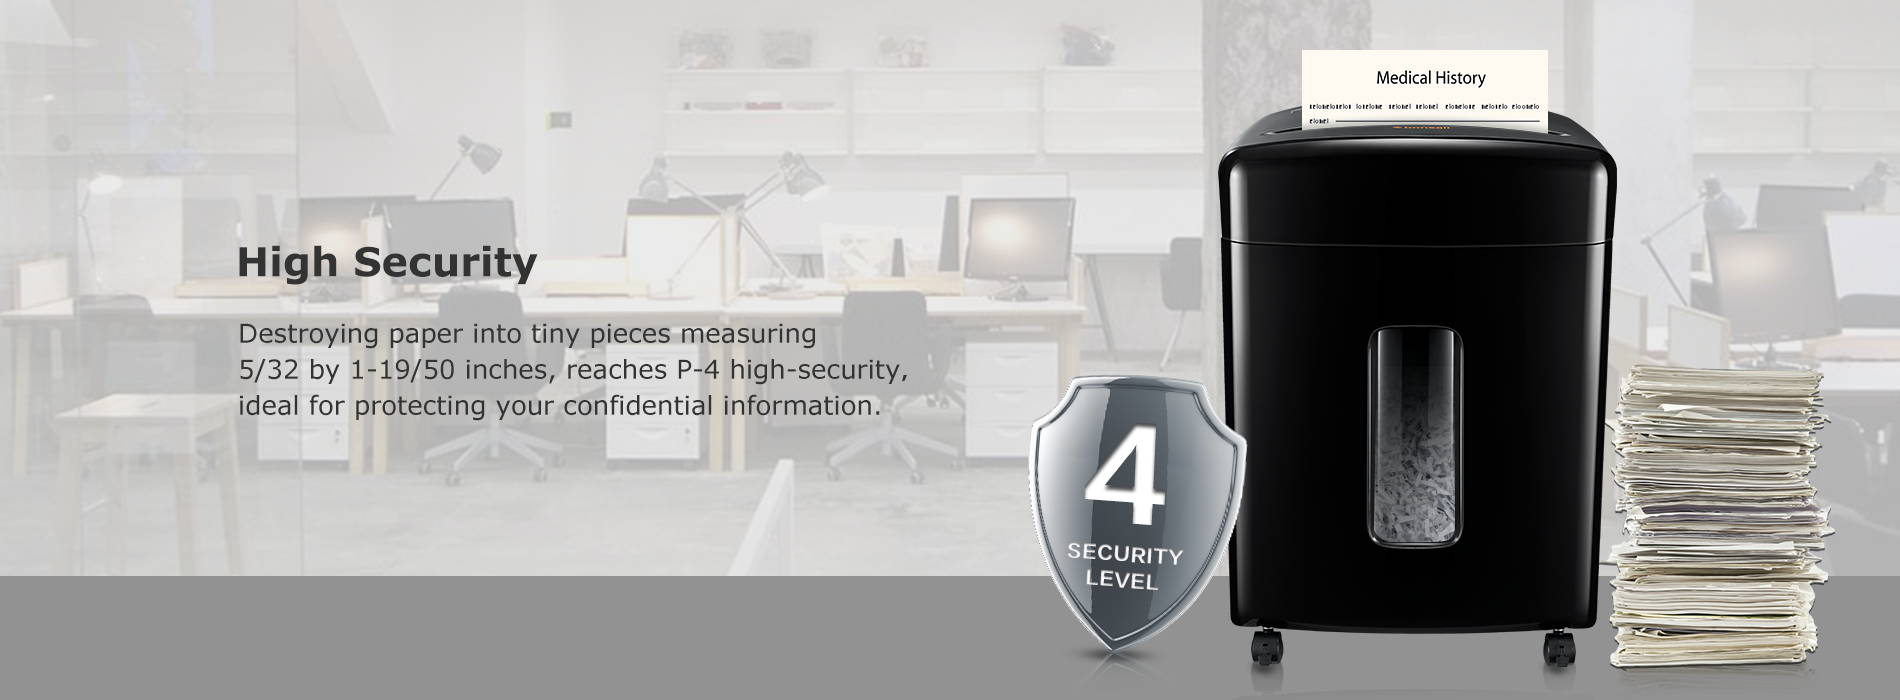 High Security Destroying paper into tiny pieces measuring 5/32 by 1-19/50 inches, reaches P-4 high-security,ideal for protecting your confidential information.